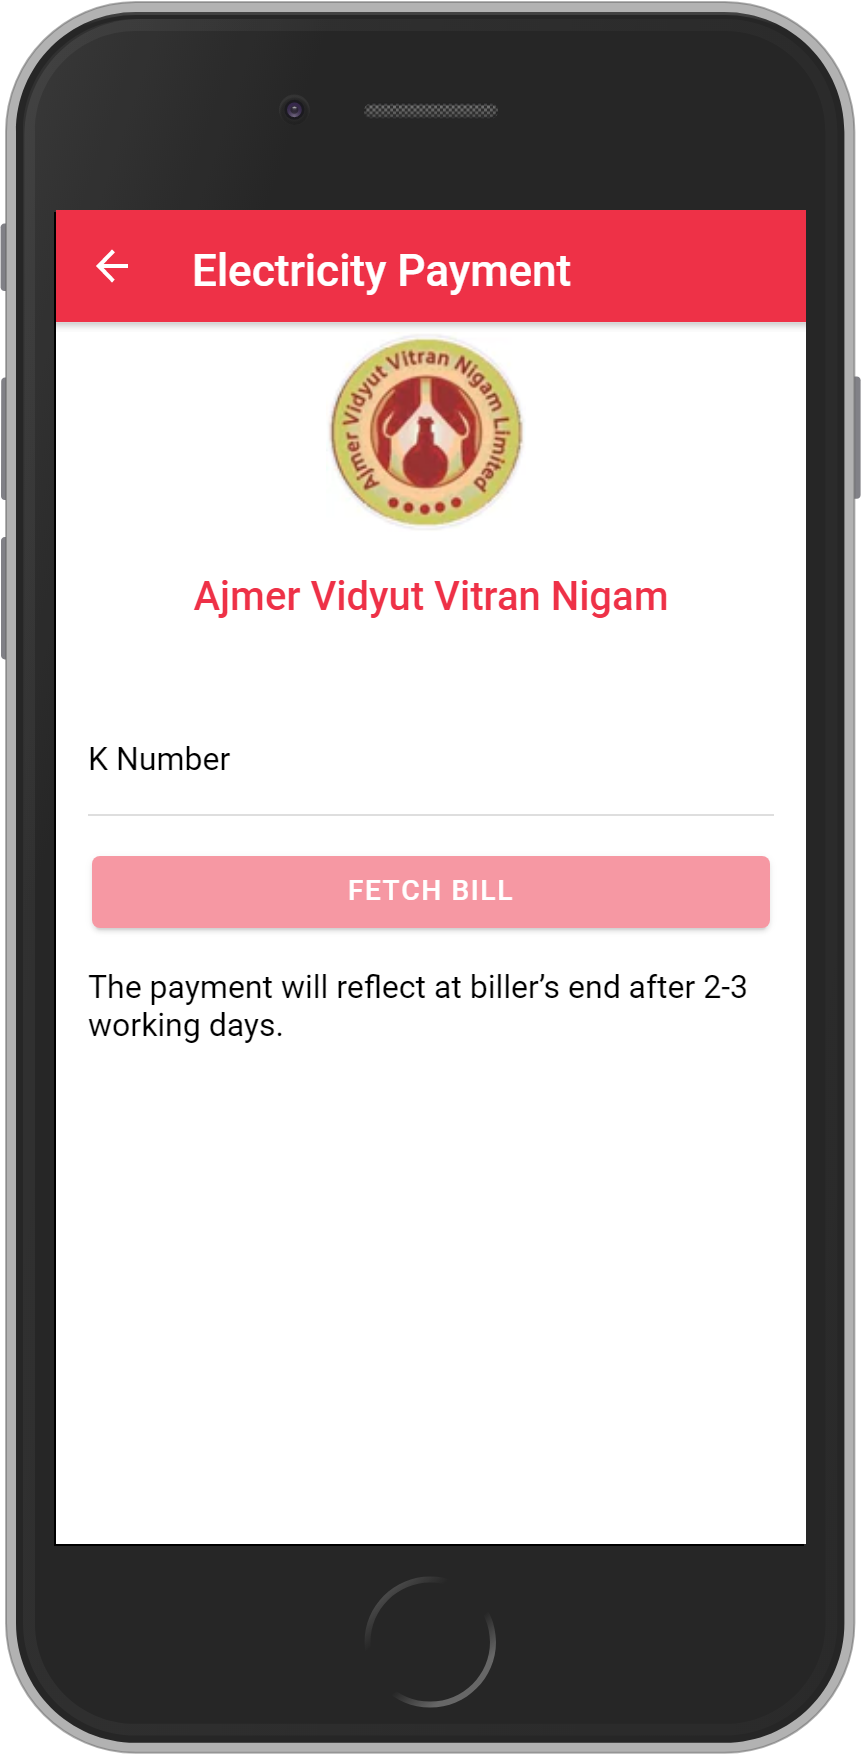 Get UNLIMITED <b>0.1%</b> CASHBACK on Ajmer Vidyut Vitran Nigam Bill Payment.